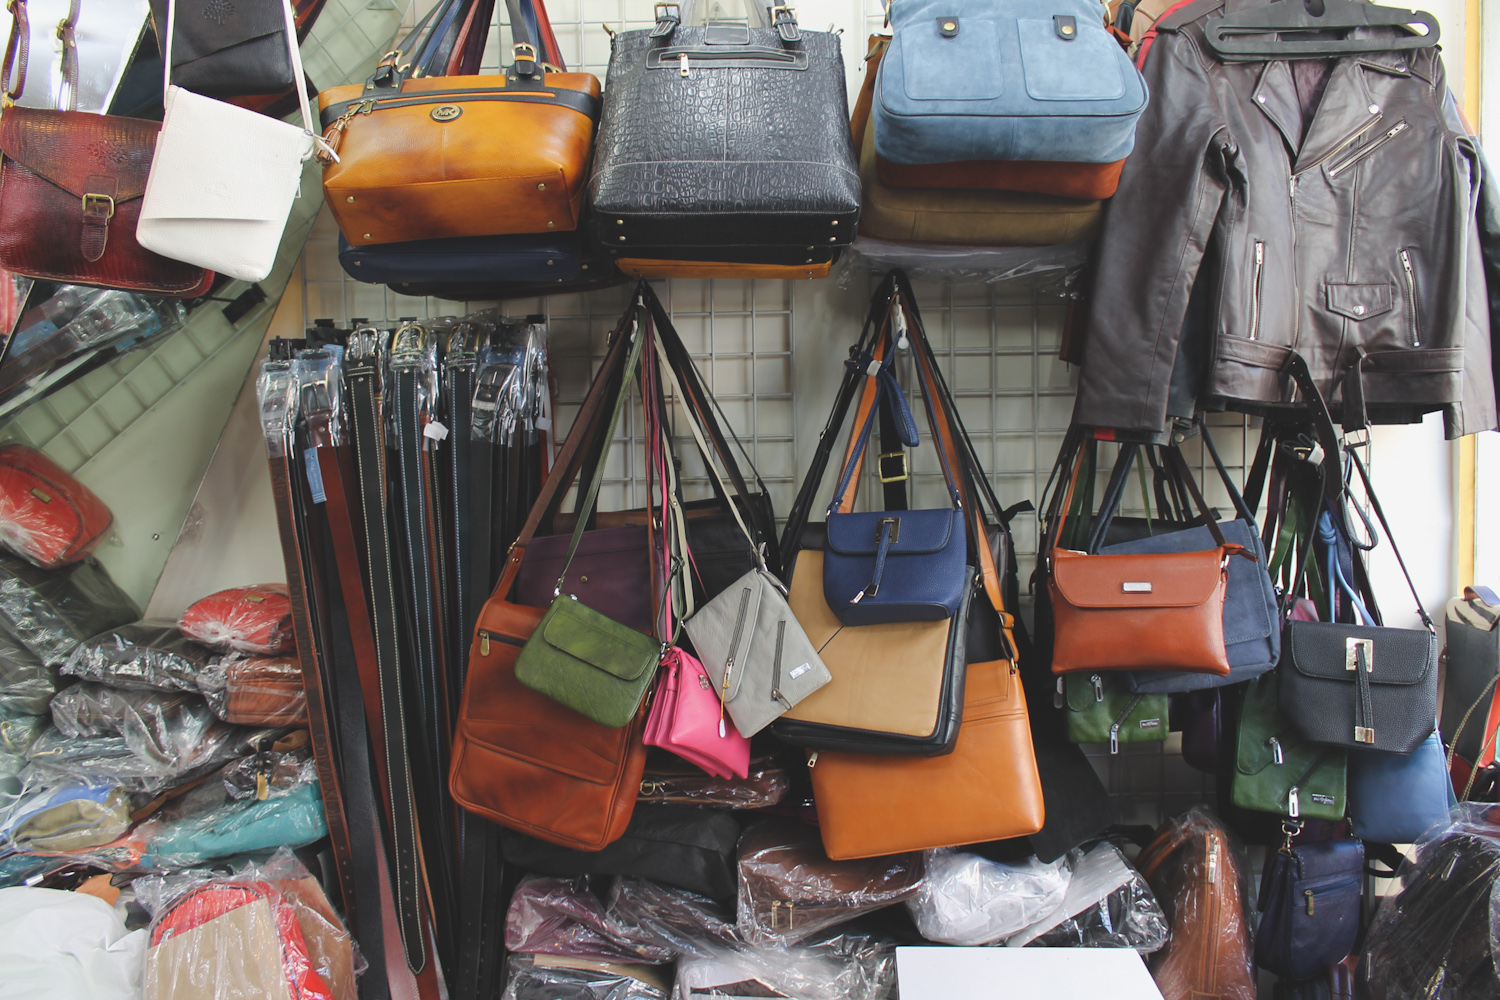 Leather Bags ☆ Leather Field in Dharavi - Chuzai ☆ Living